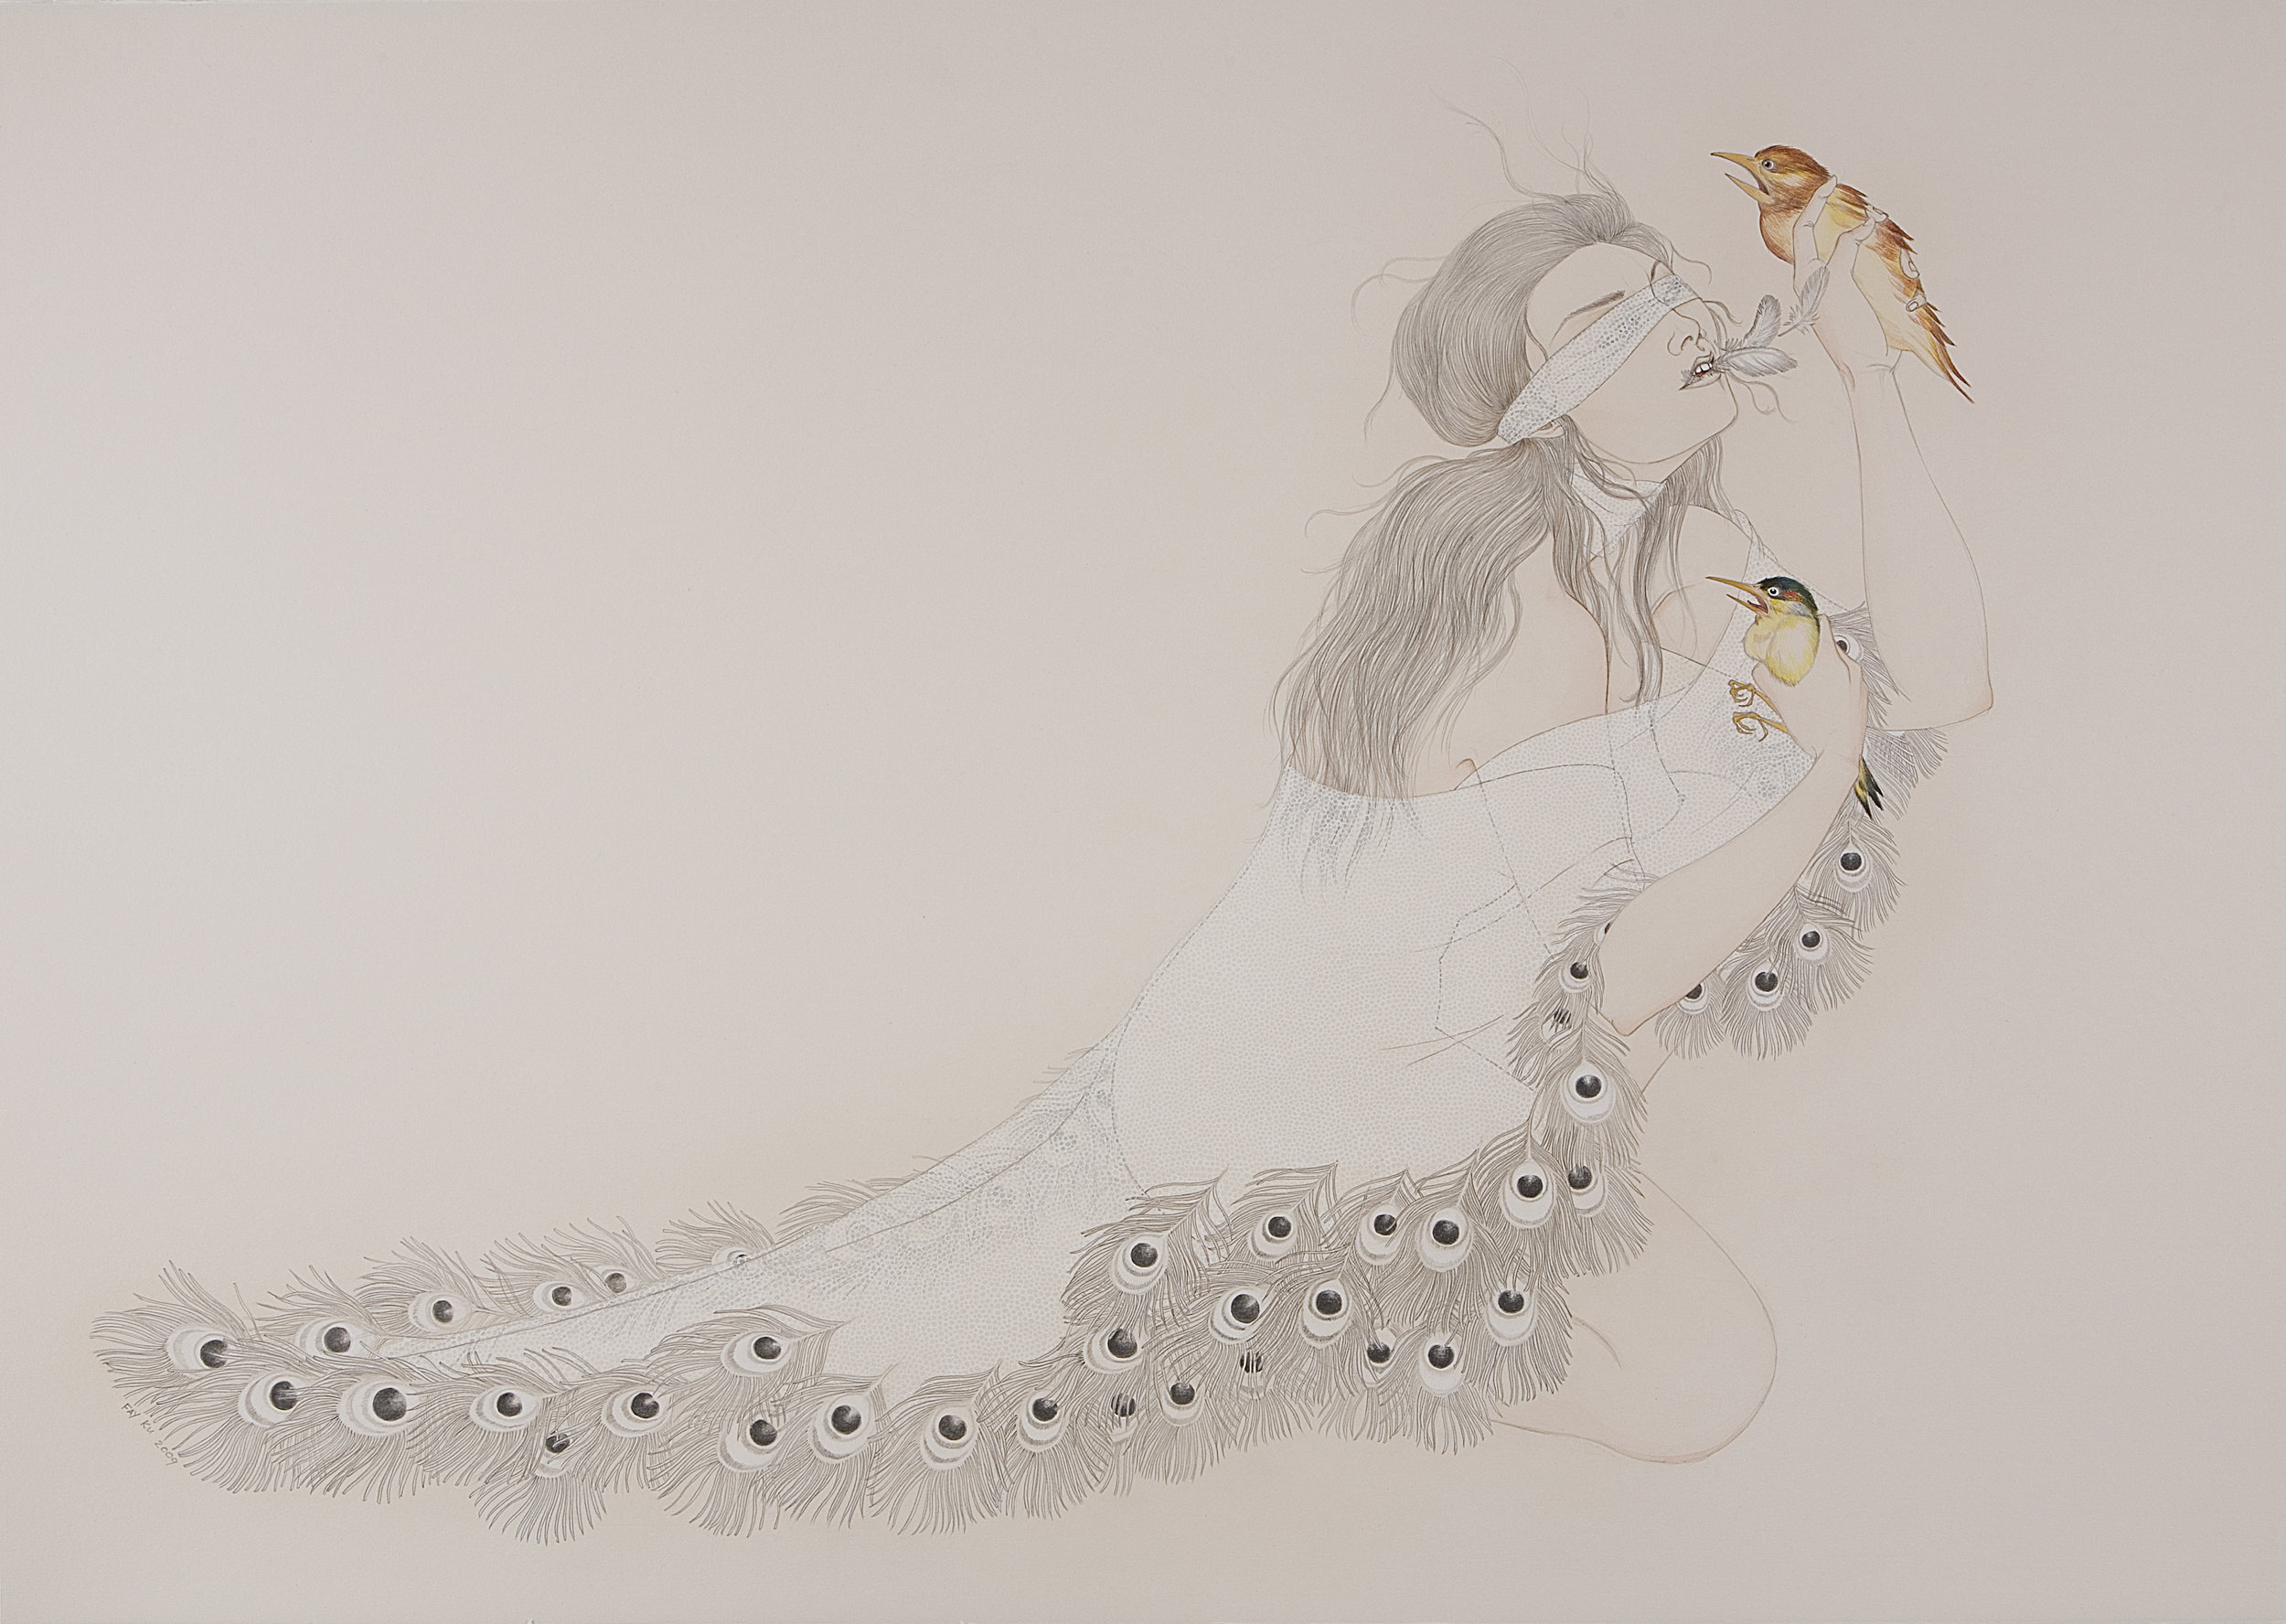 Birds Of A Feather , 2009 Graphite, ink, watercolor on ivory Fabriana Rosaspina 27.5 x 39 inches Private collection